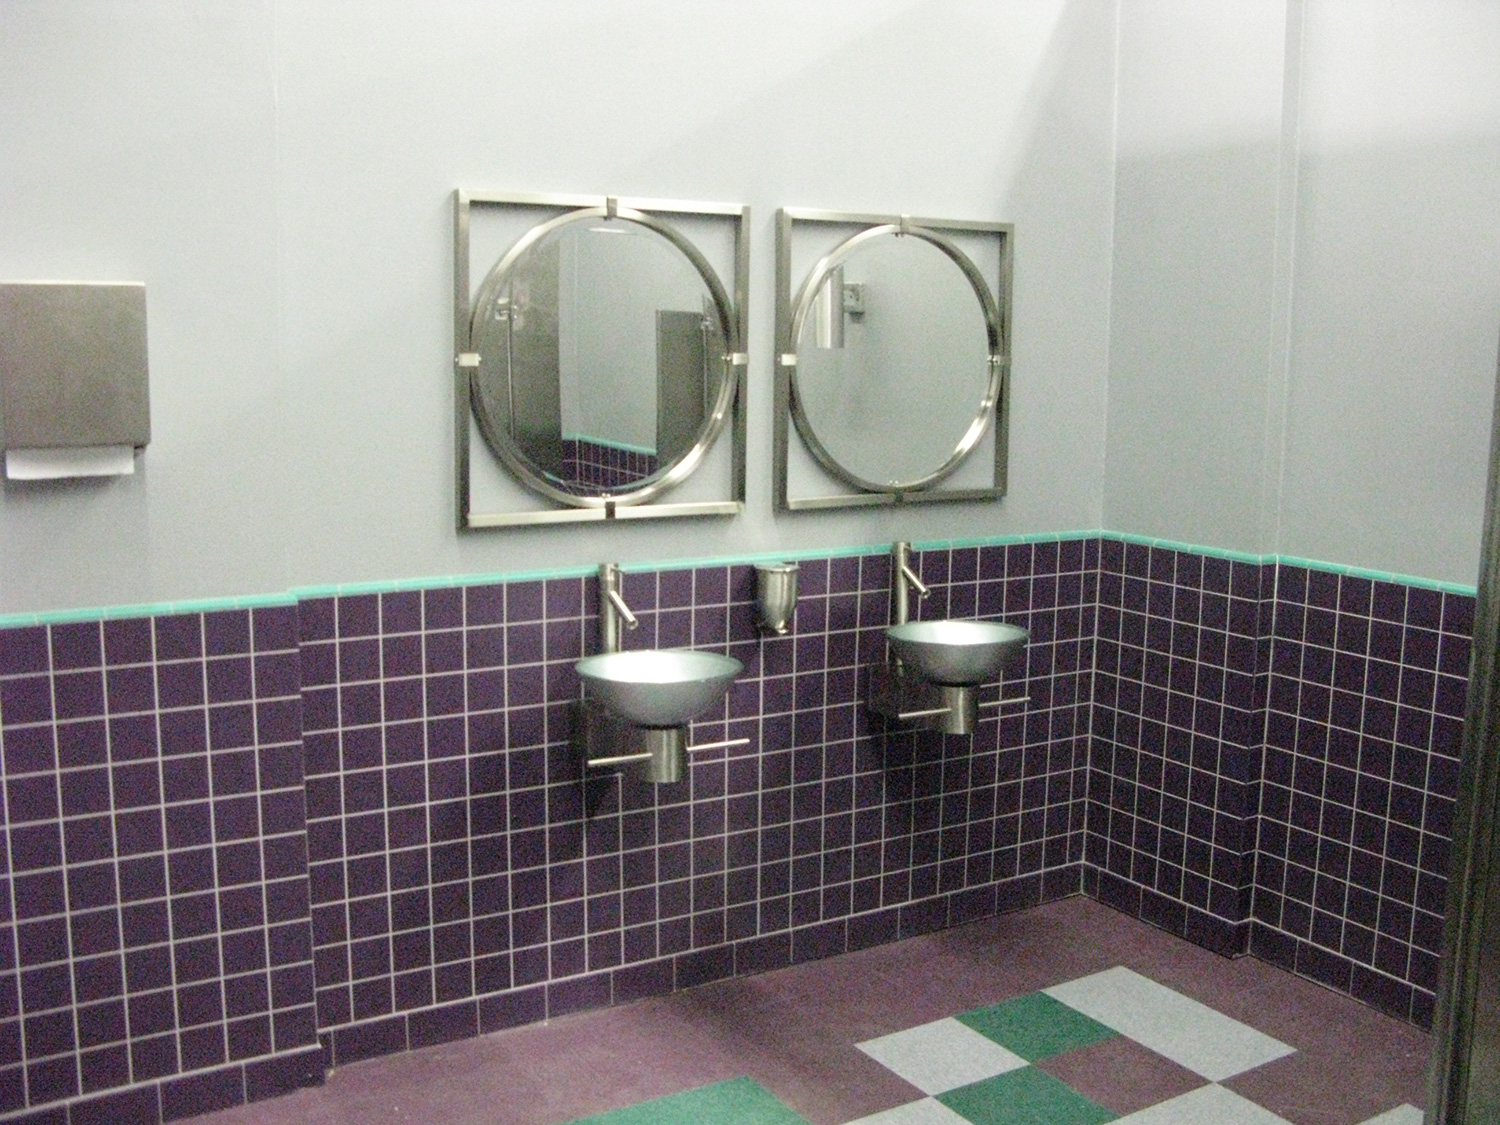 Women's bathroom in teenage nightclub stage set.